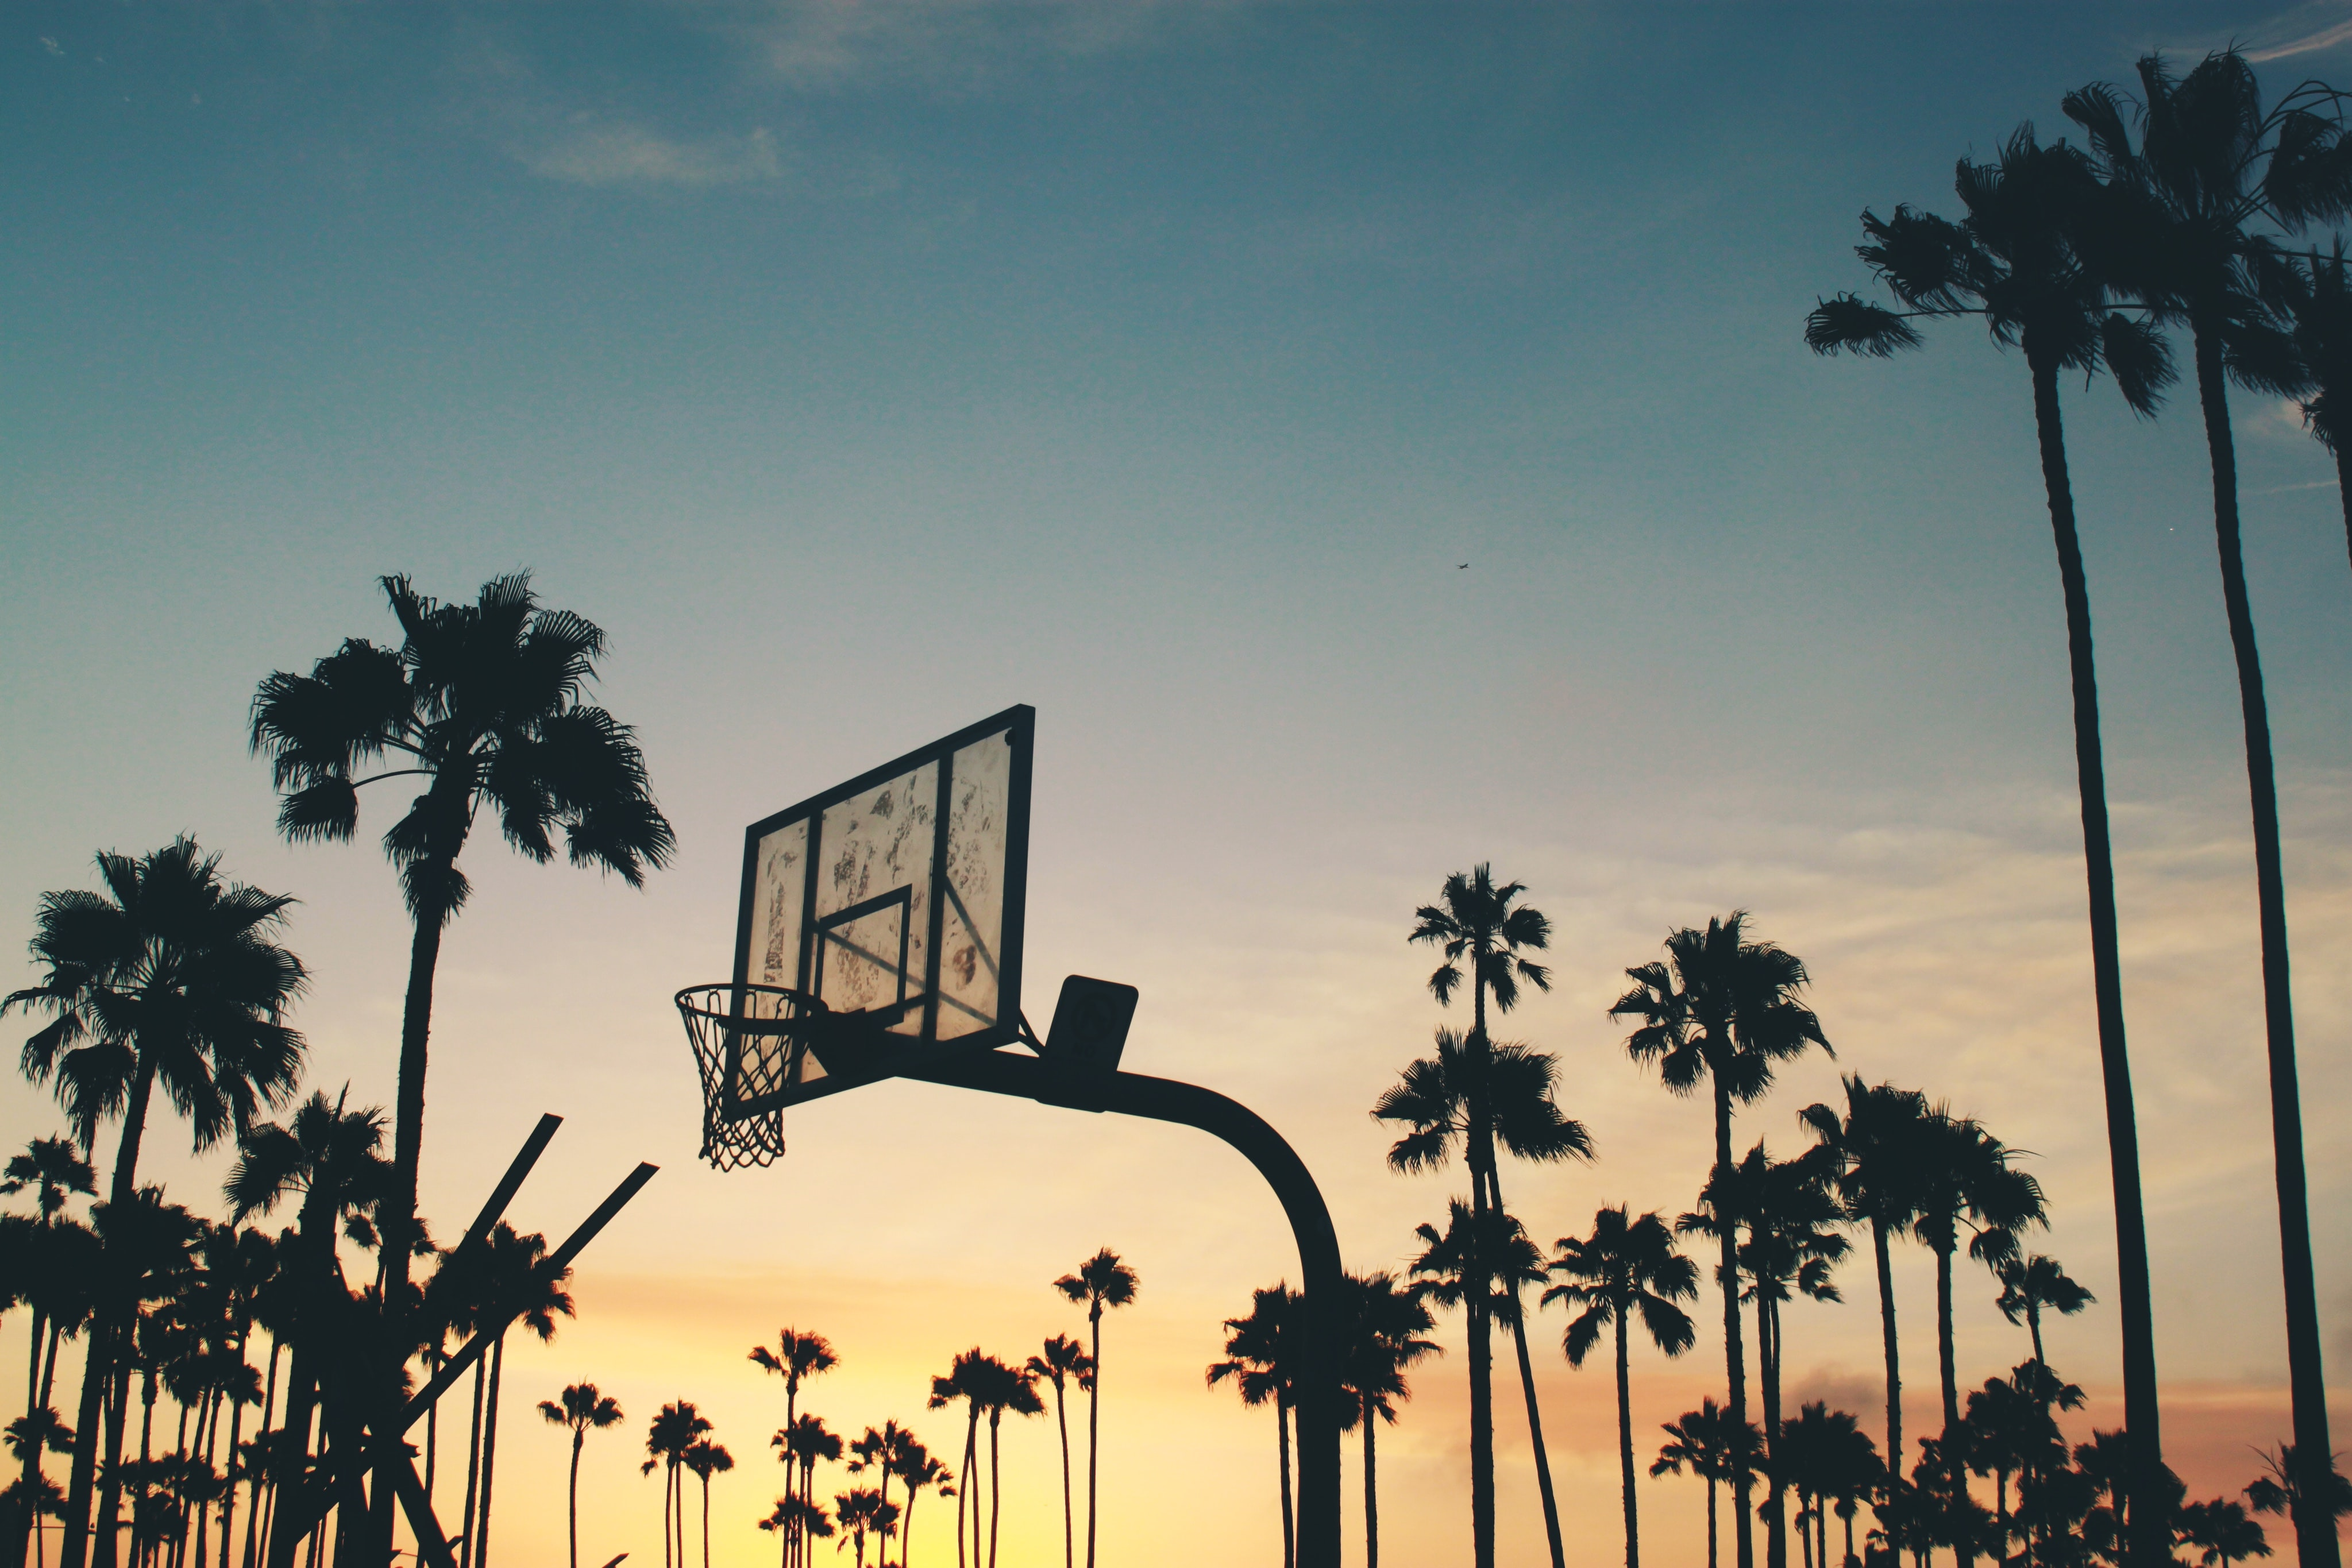 silhouette photo of basketball system